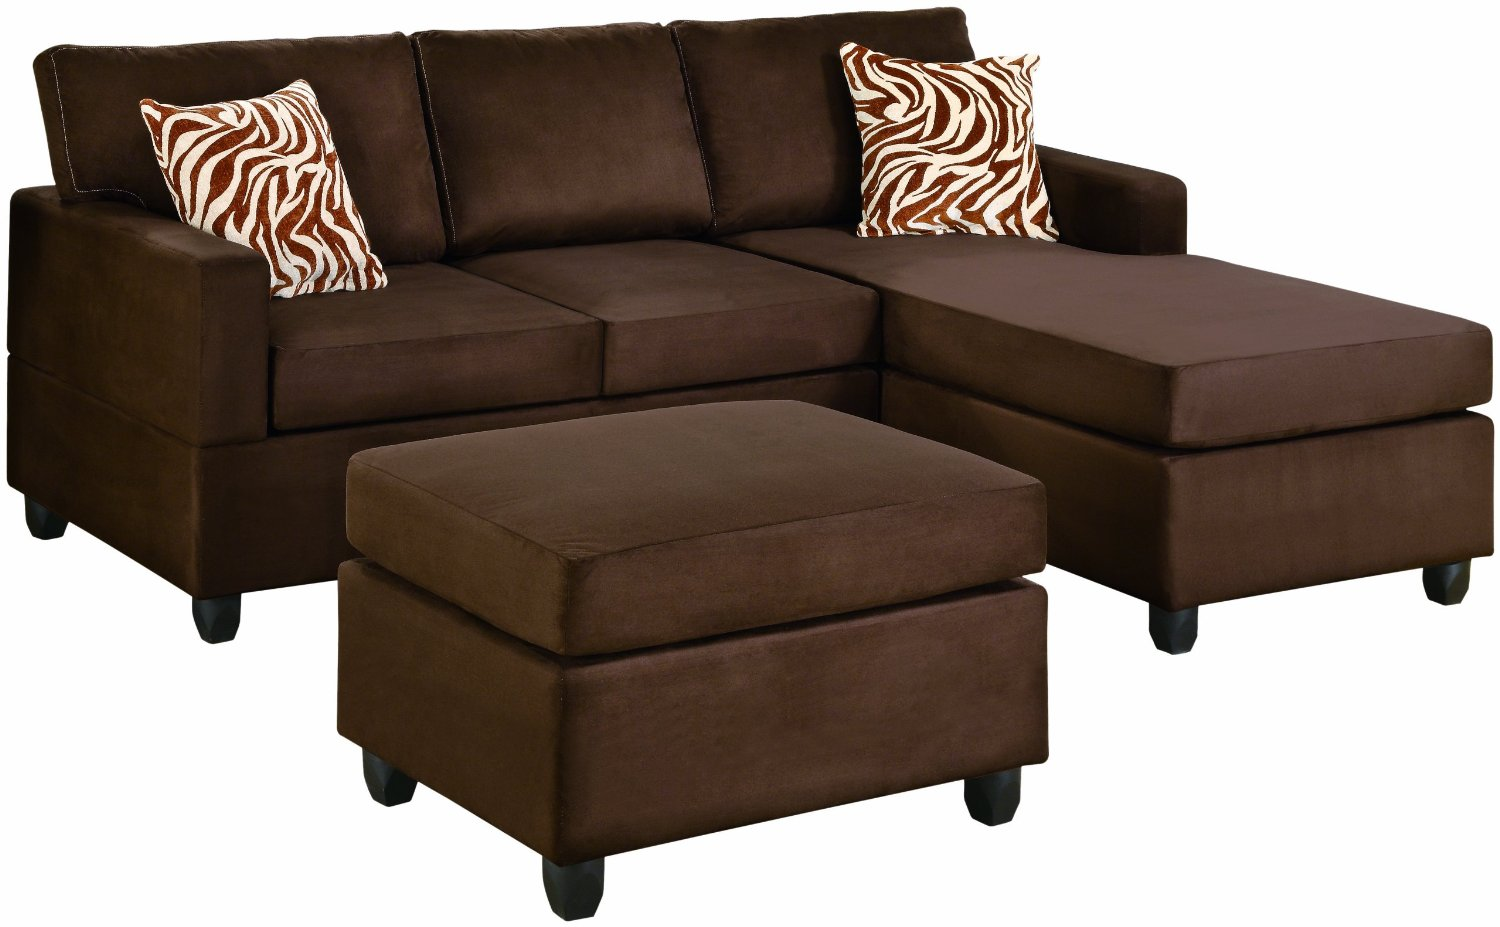 charming cheap sectional sofas in brown plus brown ottoman for living room furniture ideas